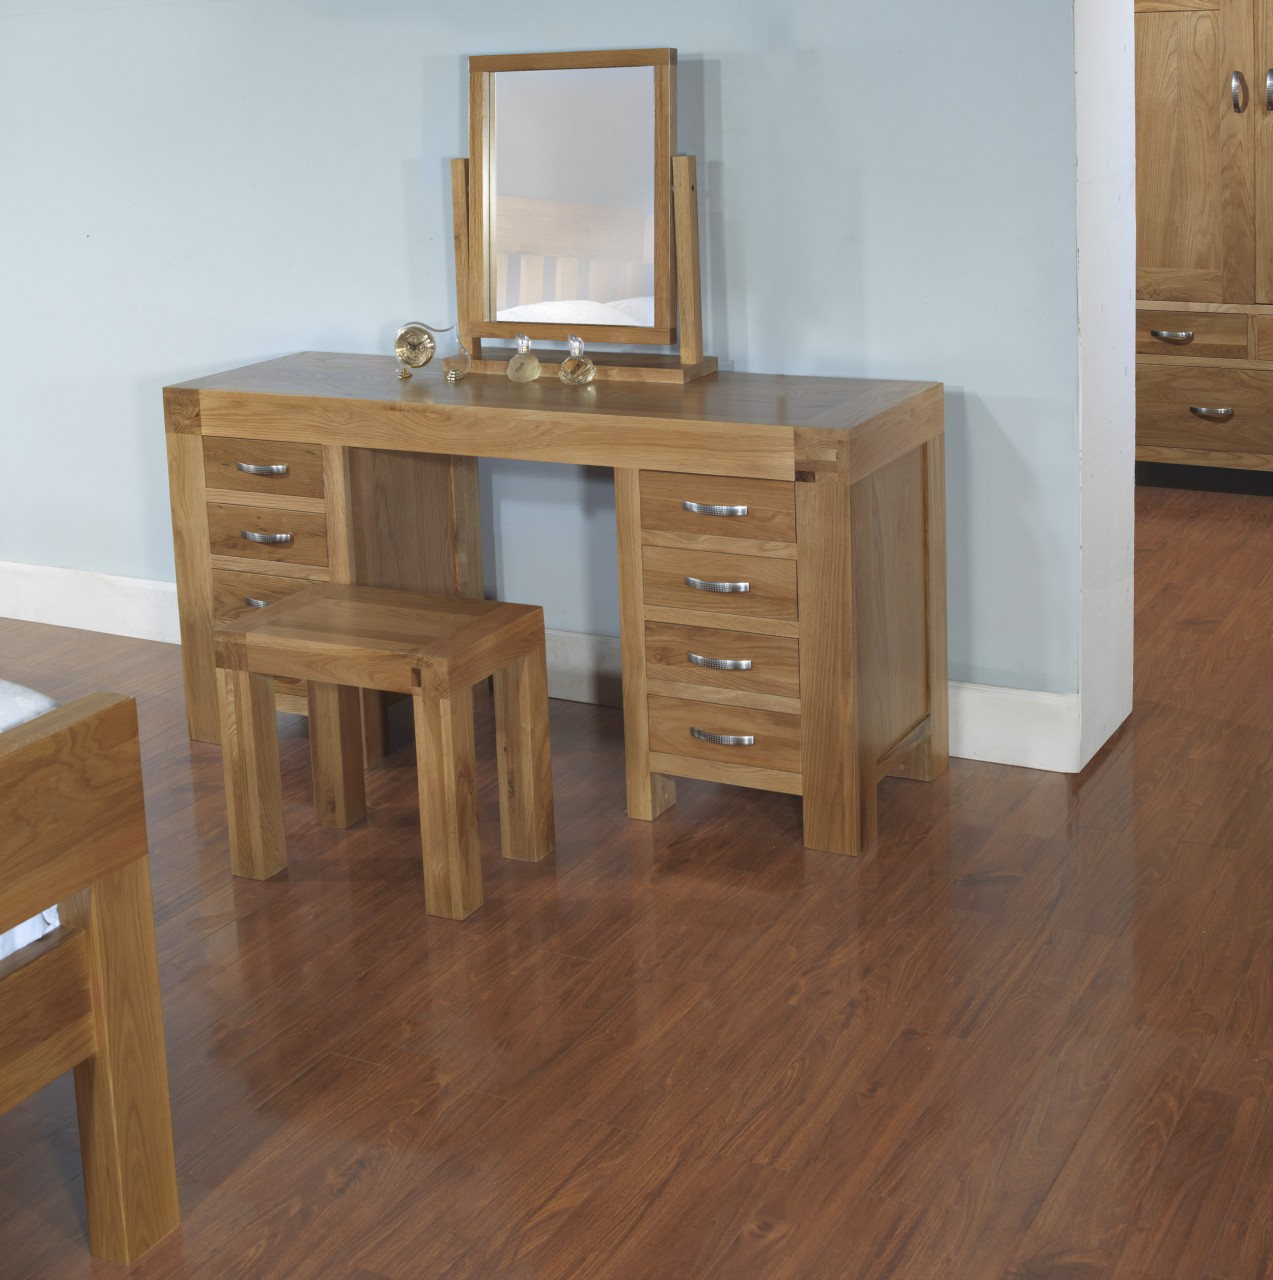 Rivermead solid modern oak bedroom furniture dressing table and ...